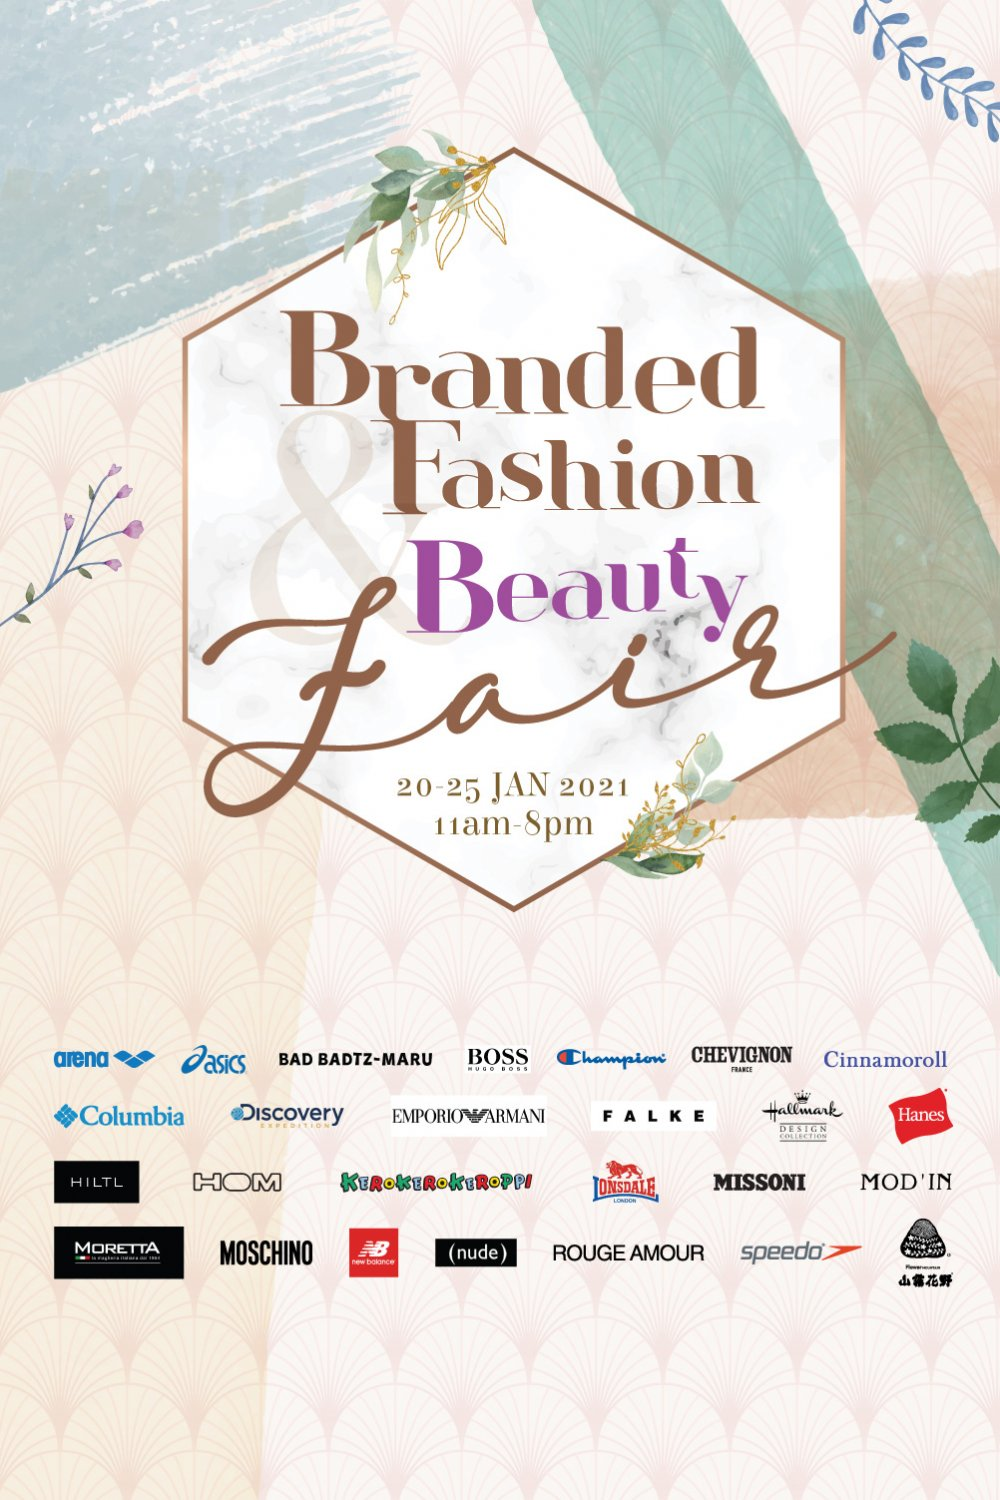 Branded Fashion & Beauty Fair